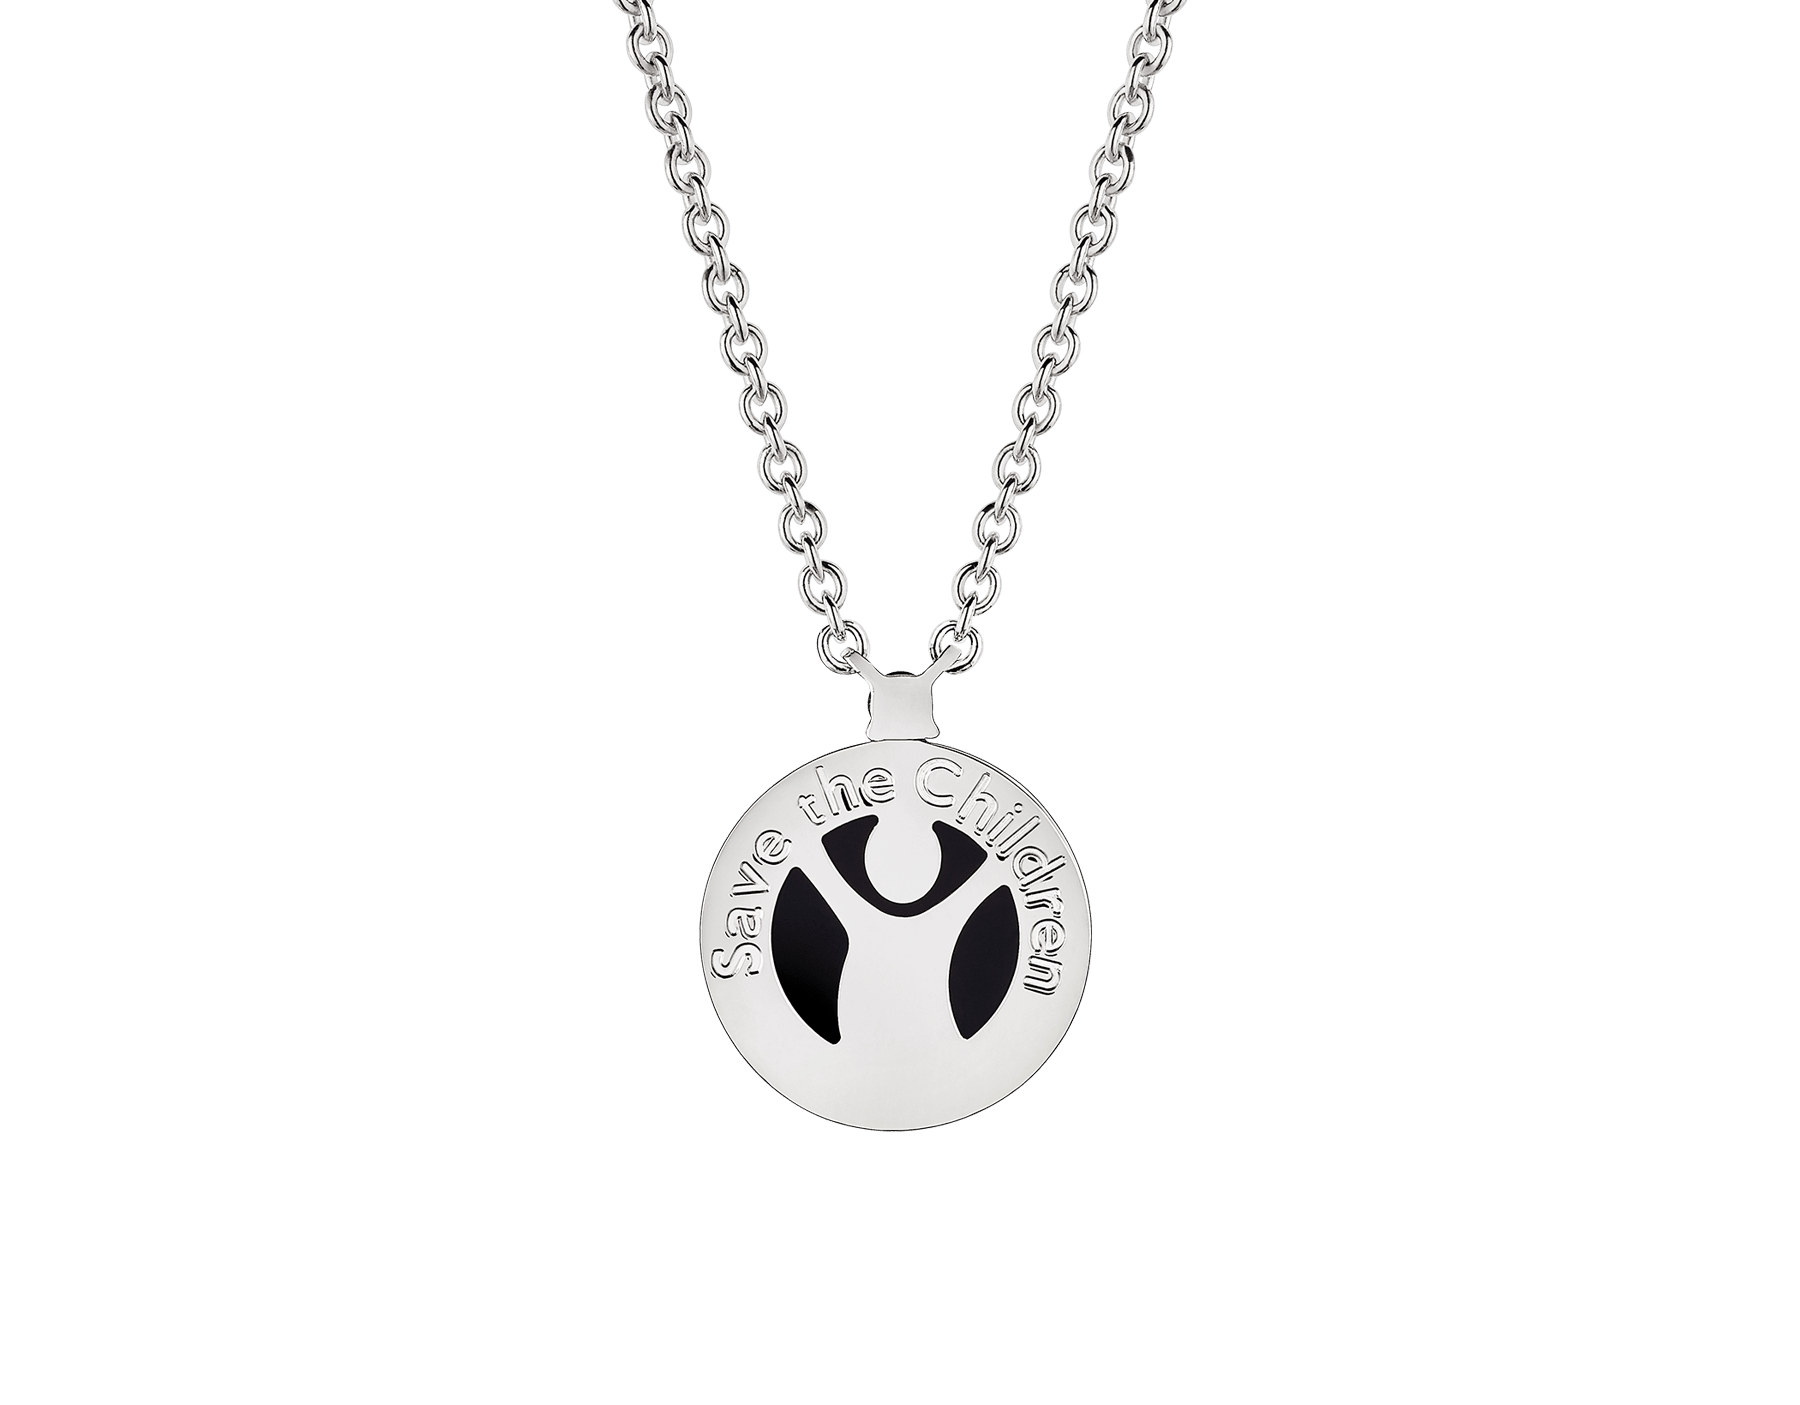 Save the Children 10th Anniversary necklace in sterling silver with pendant set with onyx element and a ruby 356910 image 3